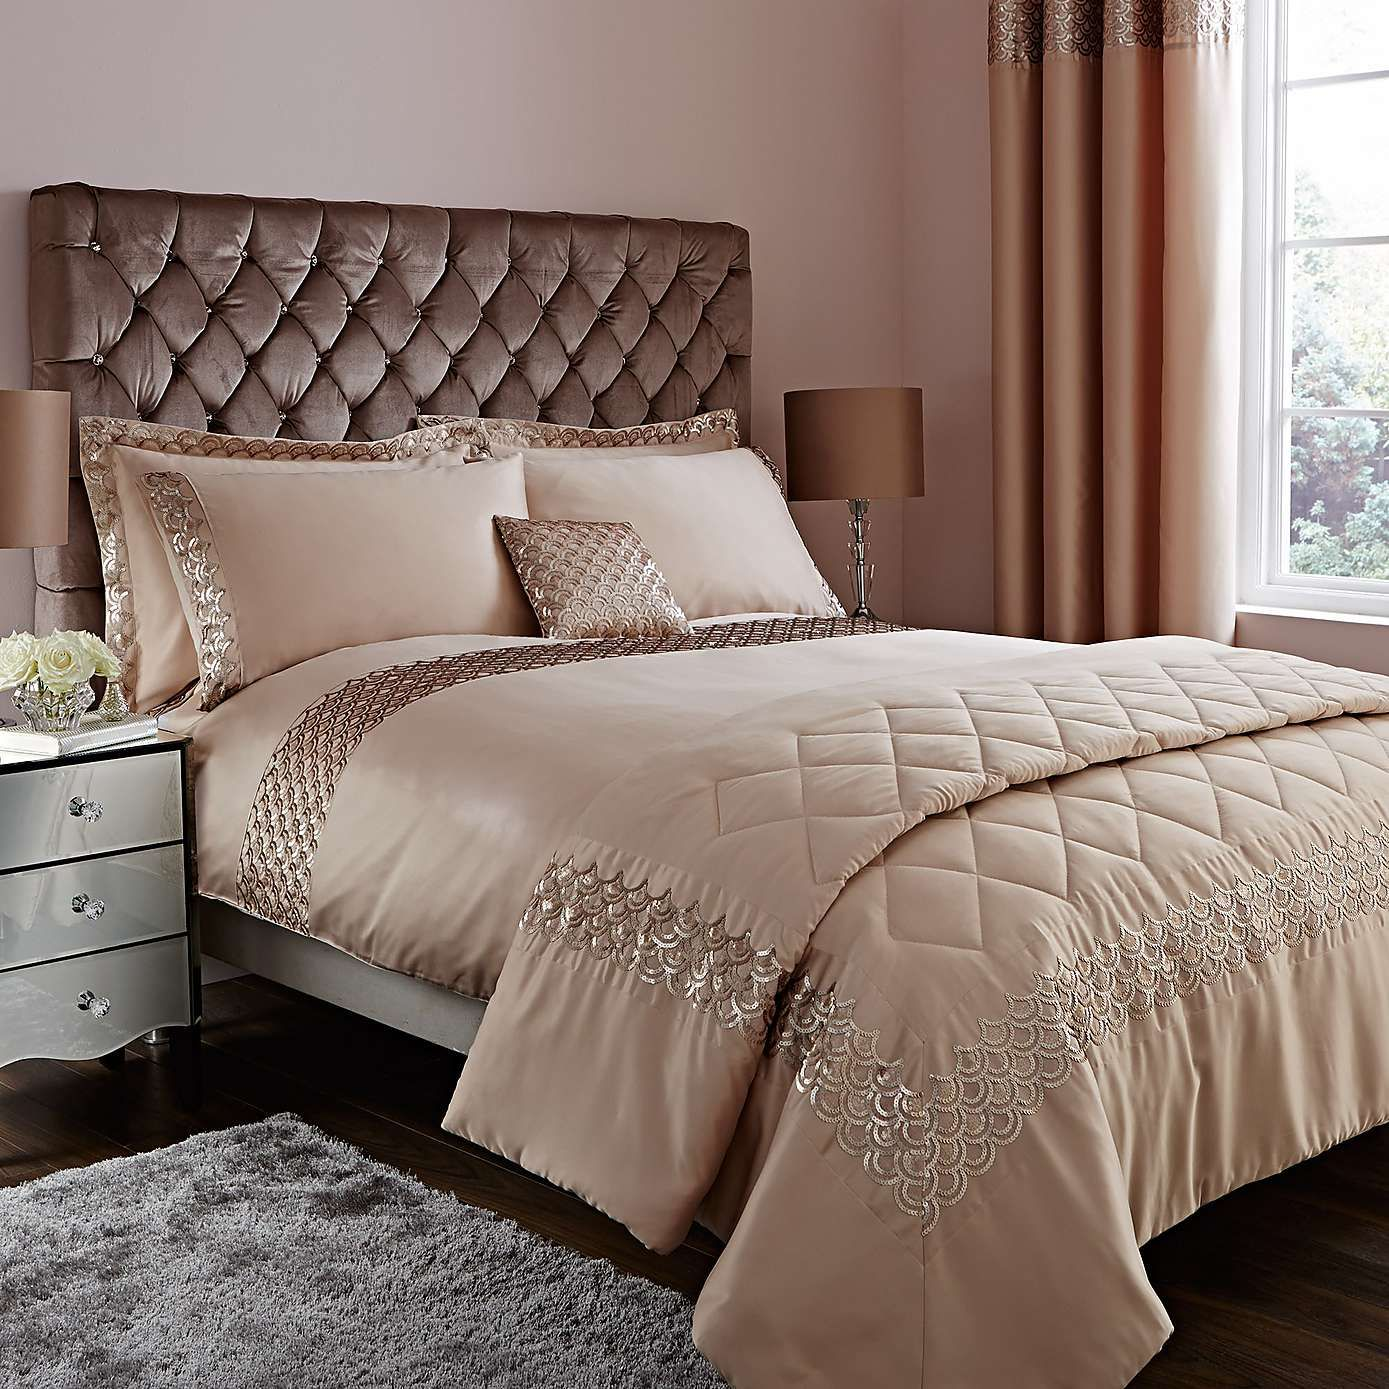 Charleston champagne duvet cover dunelm laurens board for Fashionista bedroom ideas